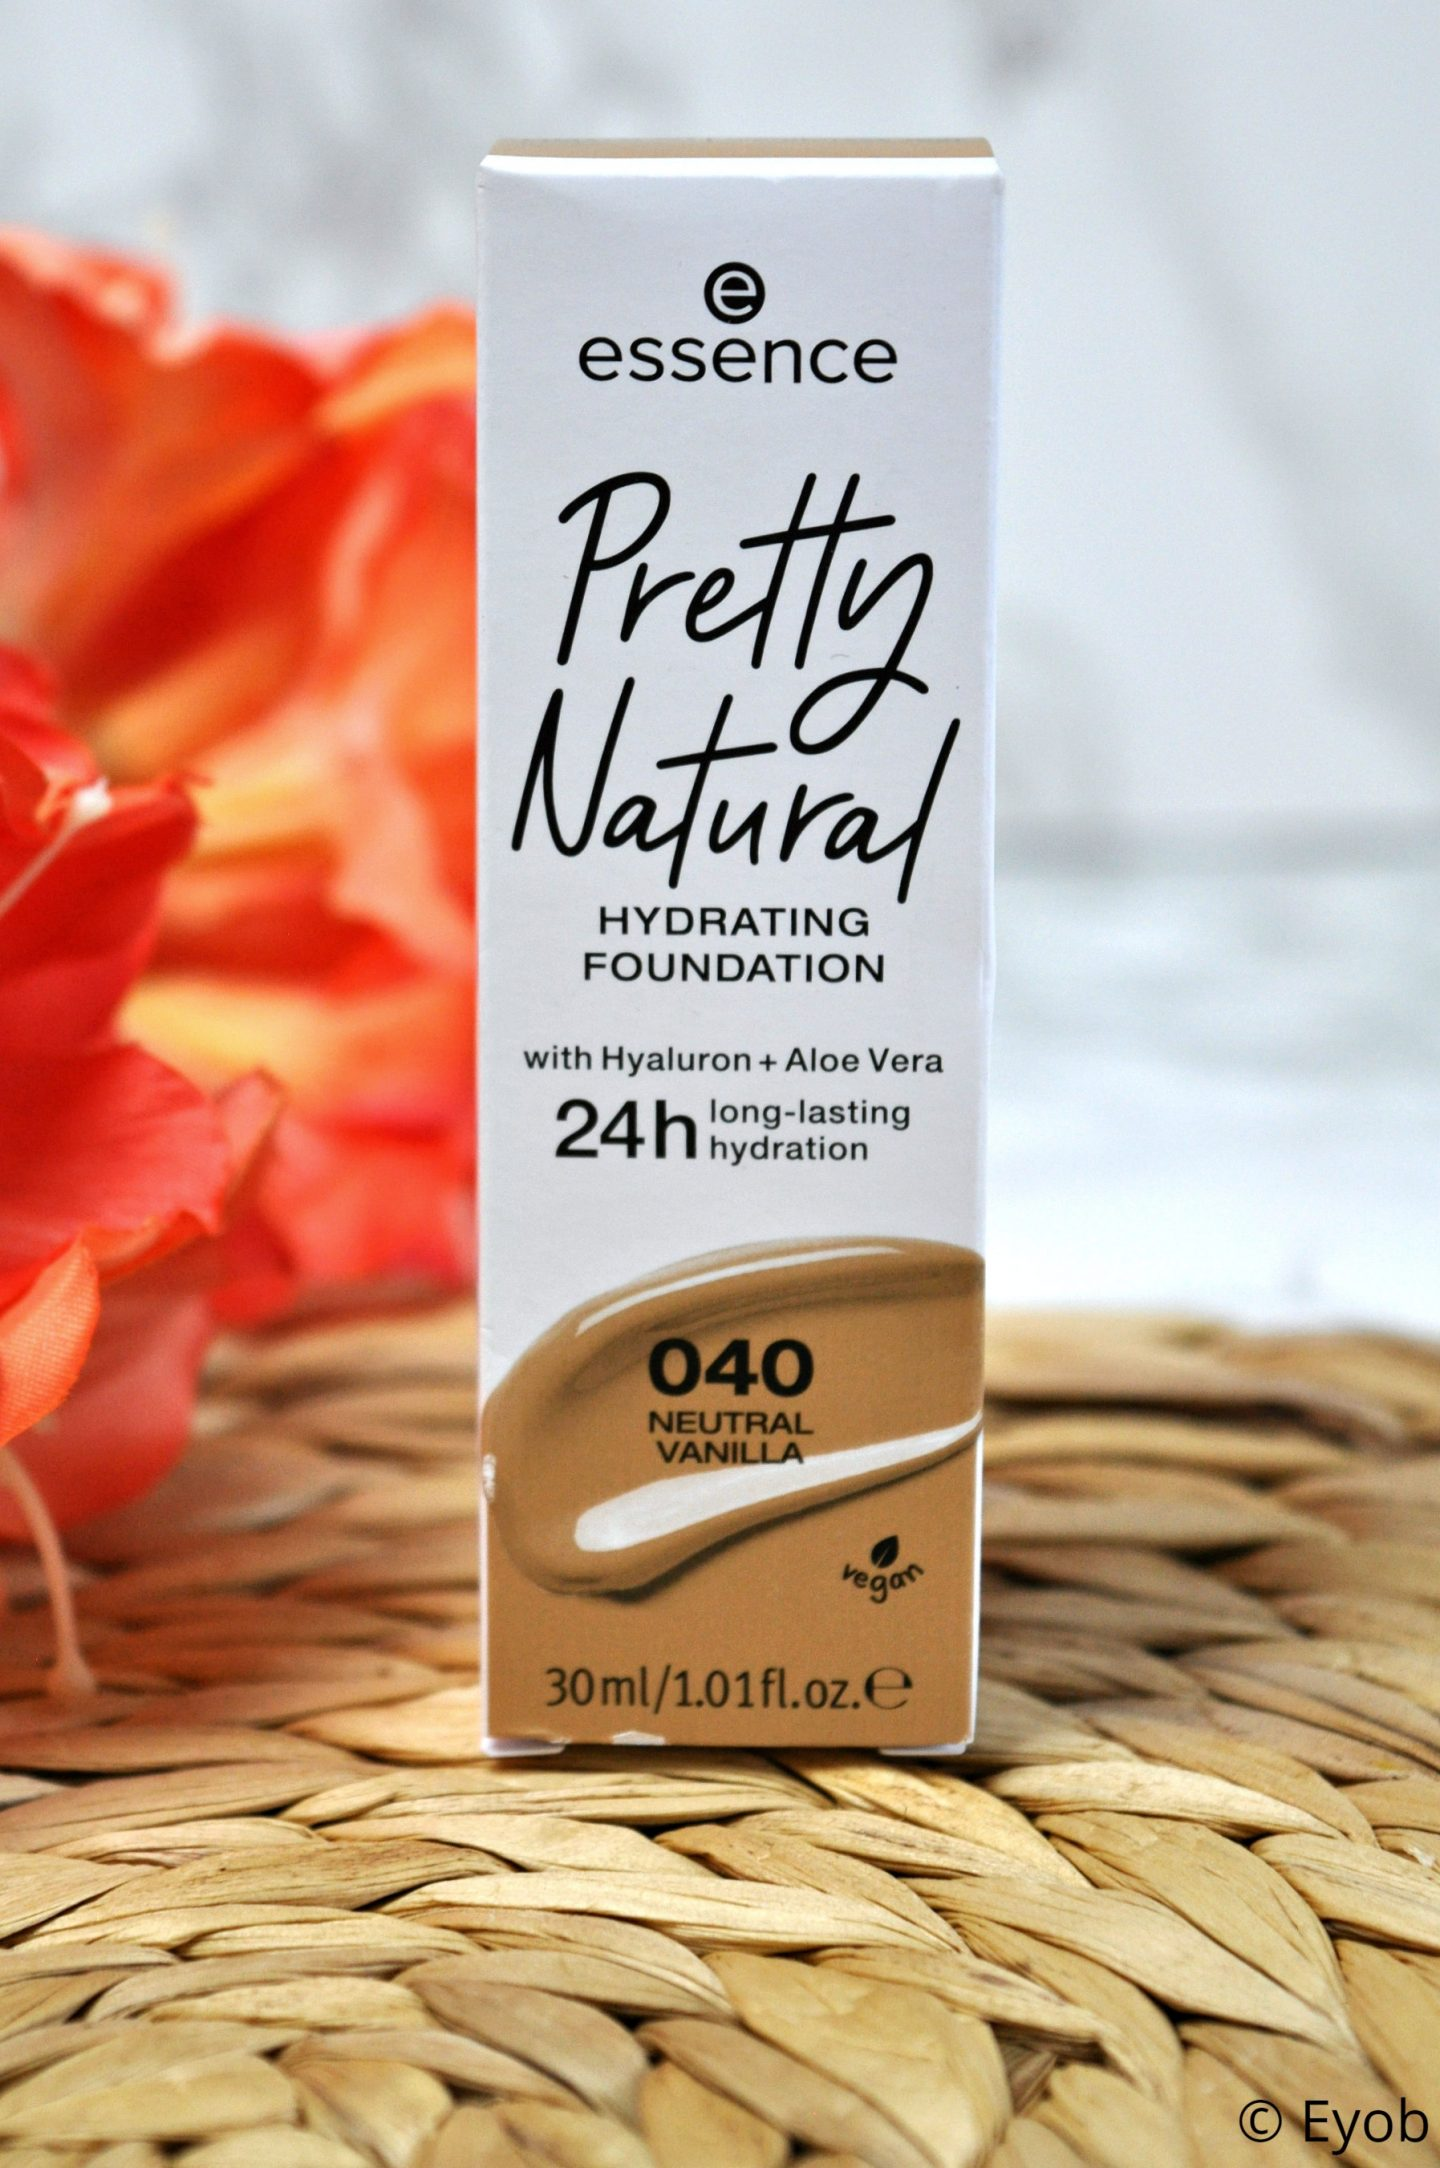 Essence Pretty Naturel Hydrating Foundation – Review